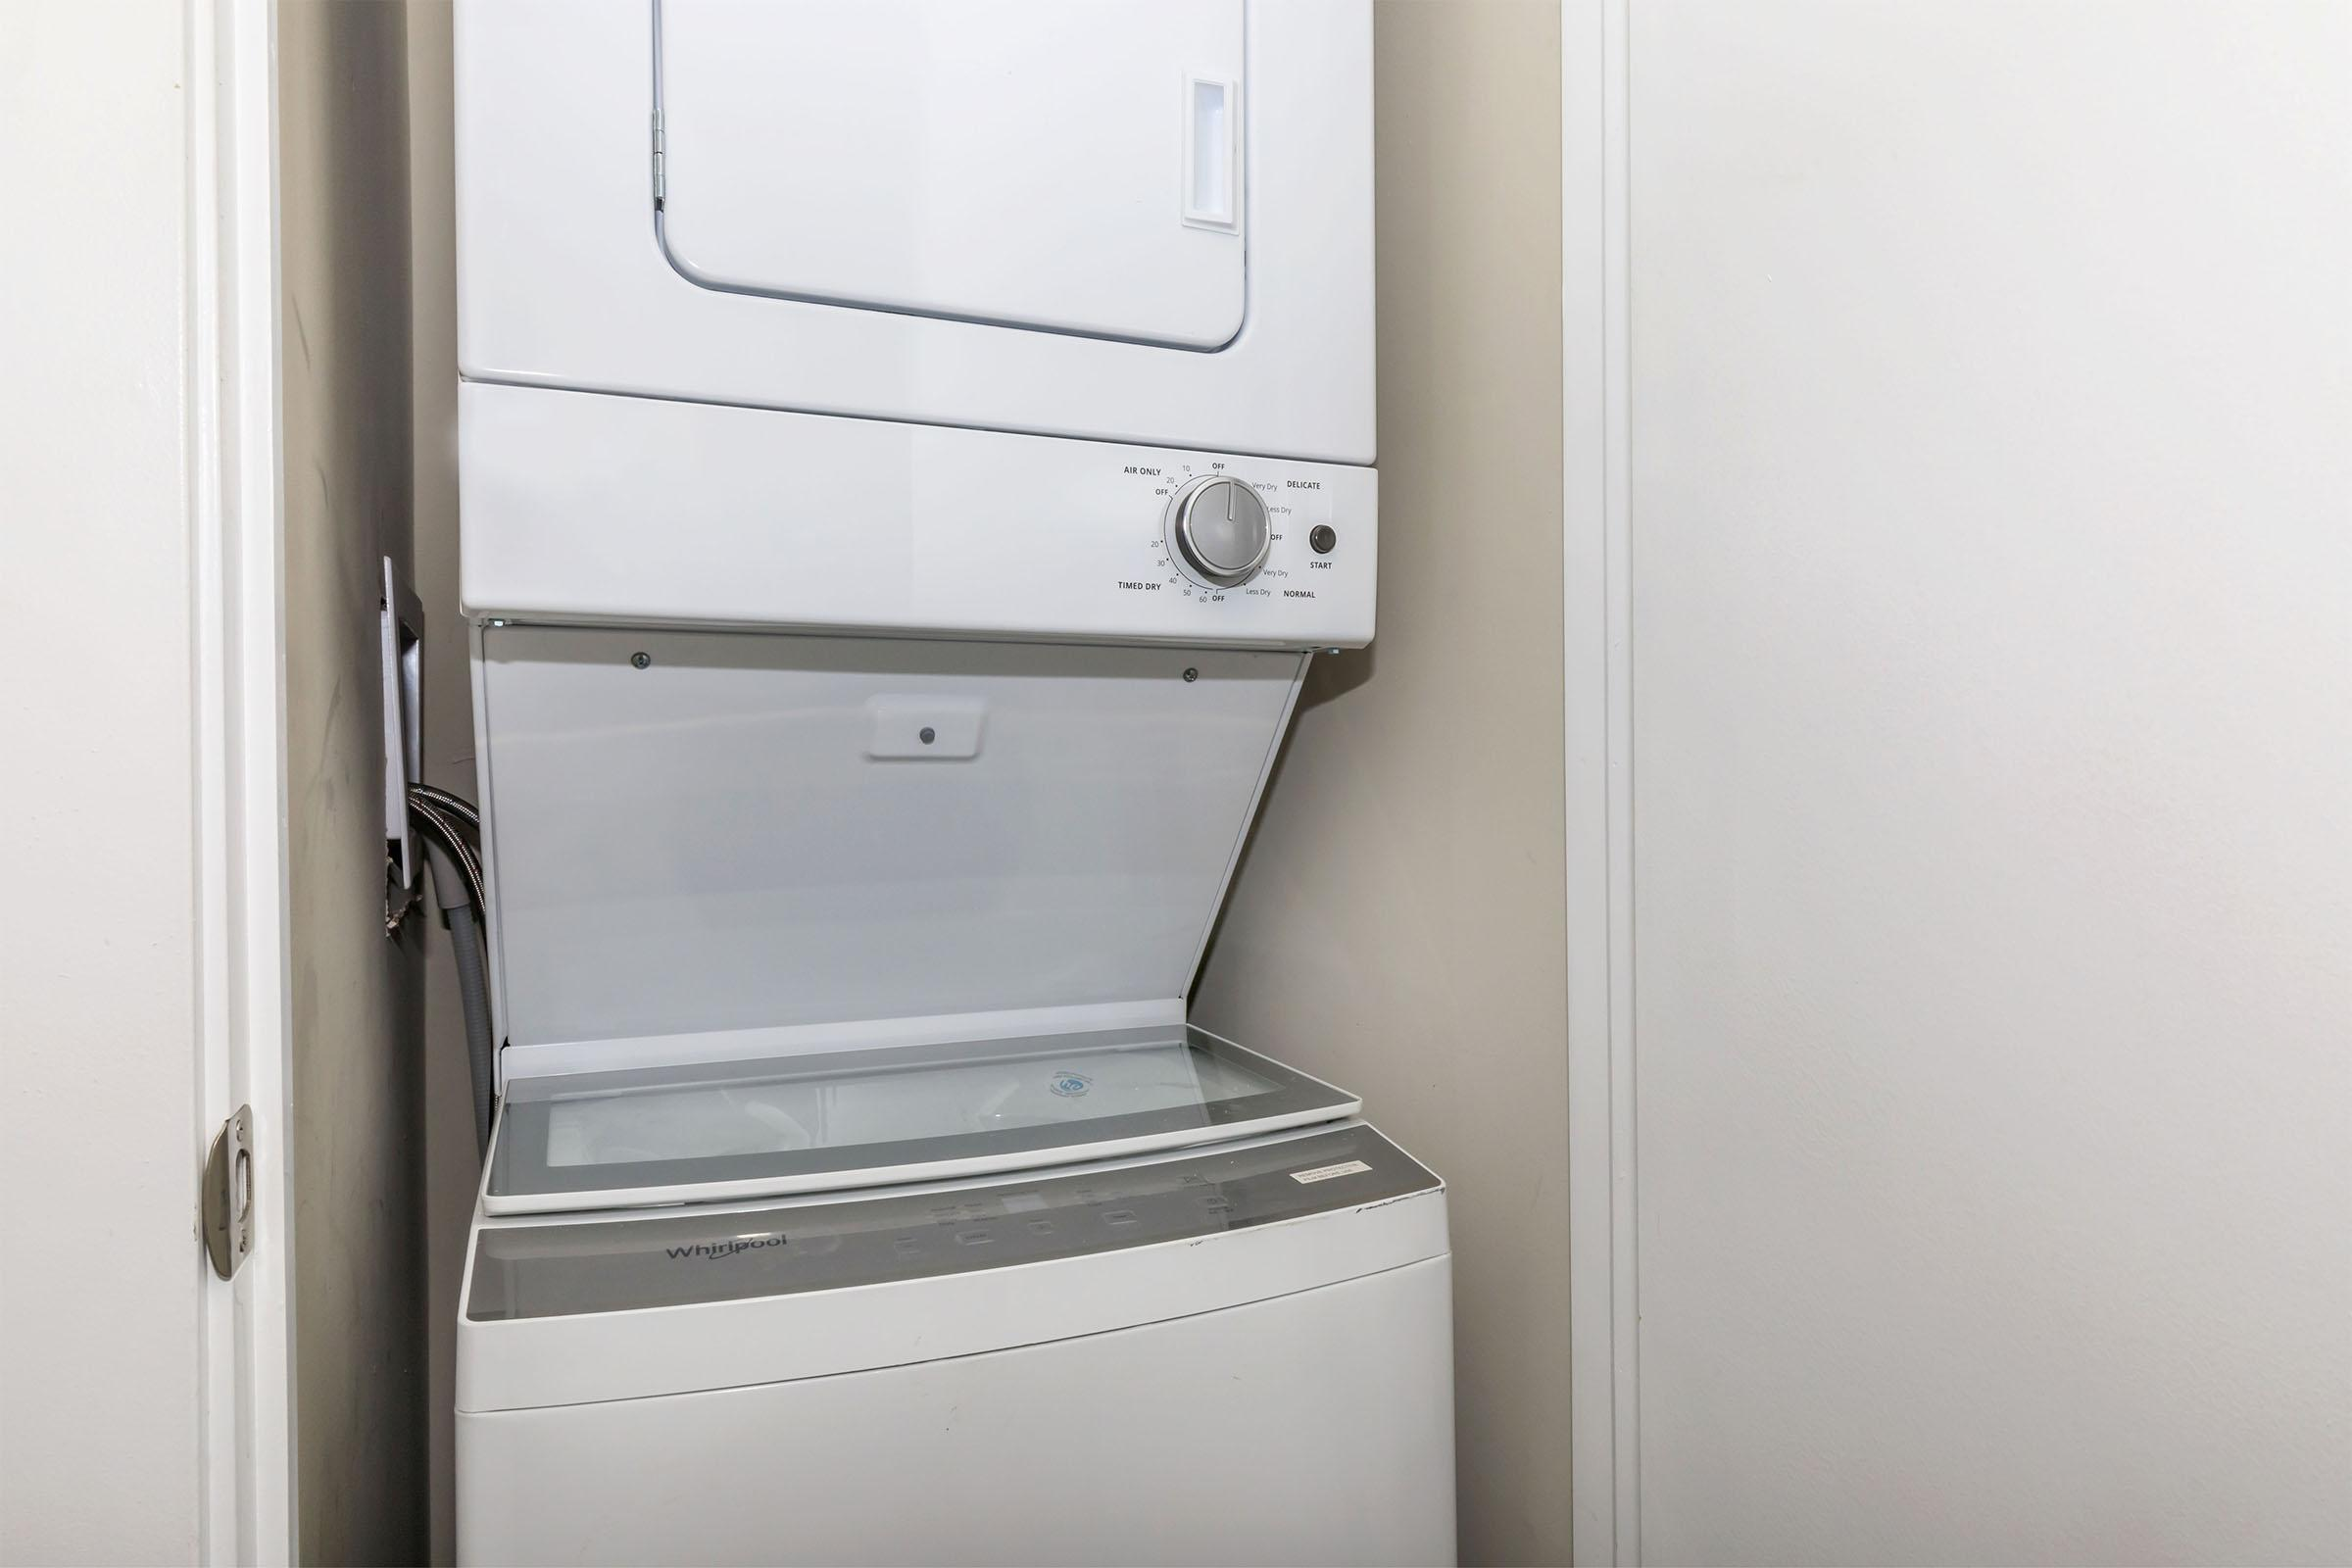 a white refrigerator freezer sitting next to a door